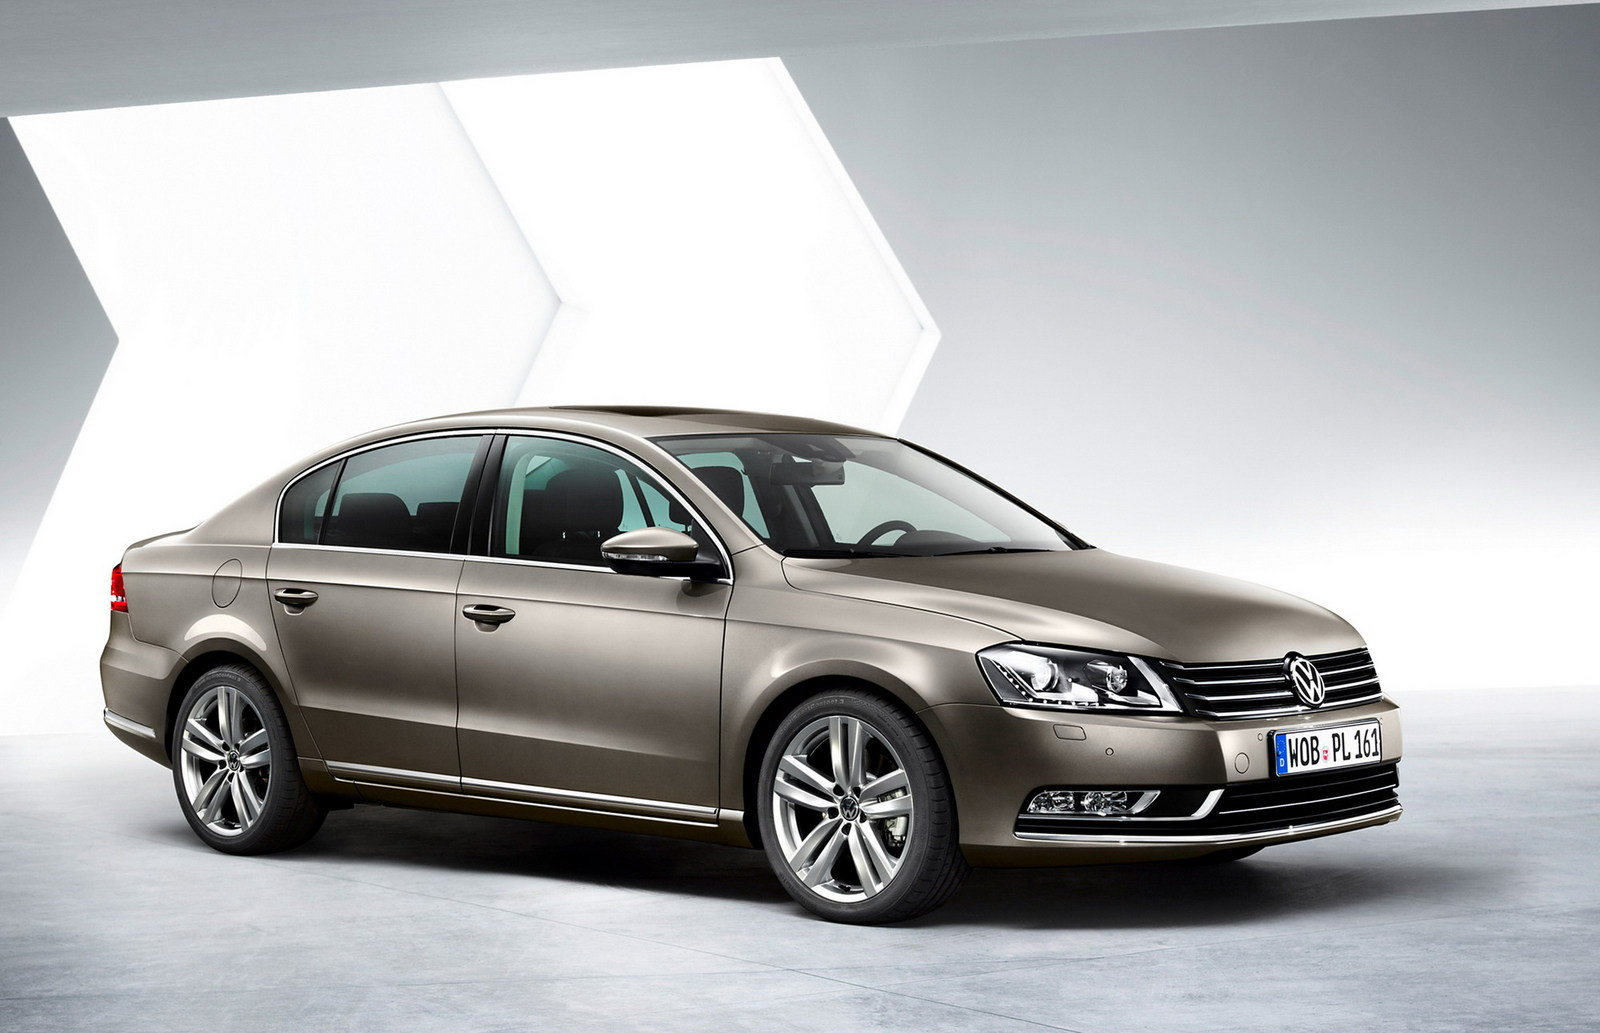 Volkswagen Passat For Sale >> 2011 Volkswagen Passat | Top Speed